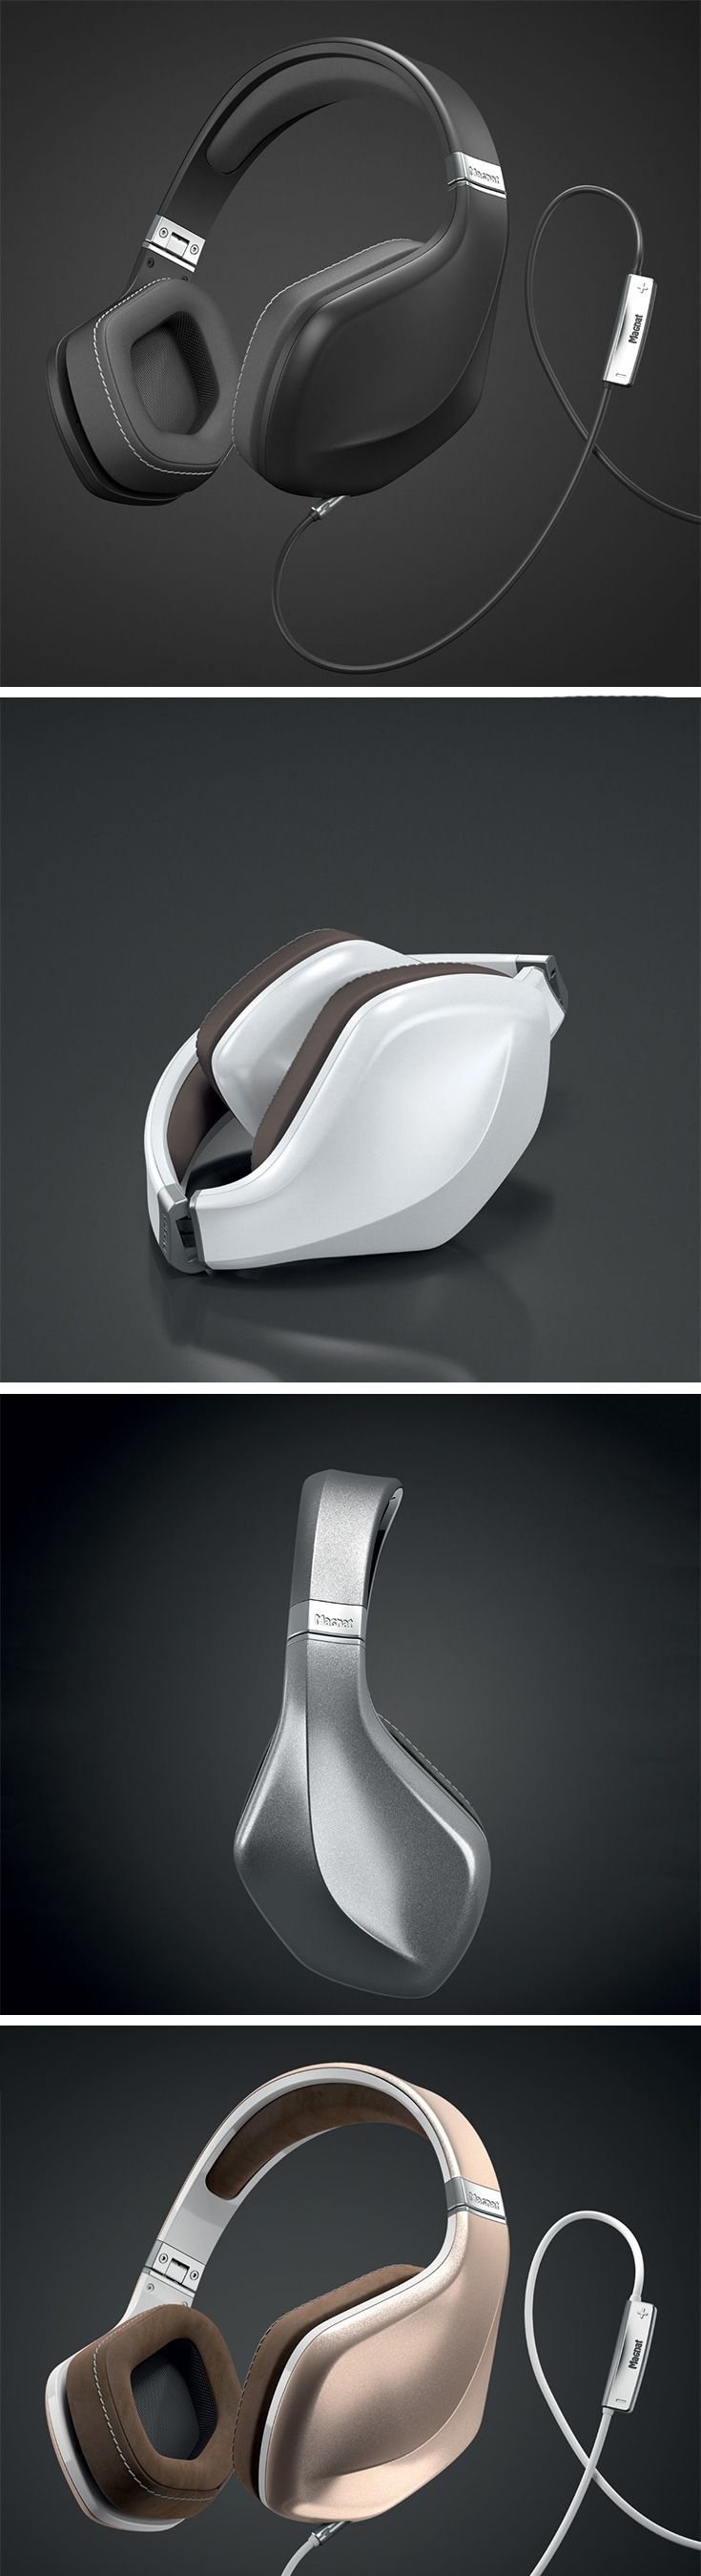 Designed by none other than Italian design powerhouse, Pininfarina (the force behind Ferrari's design legacy), the LZR 980 headphones exude a class you don't see in many headphones. Designed for German audio company, Magnat, known for their car audio systems and home audio systems, the LZR 980 is the flagship headphone of Magnat's newly launched range of wearable audio.